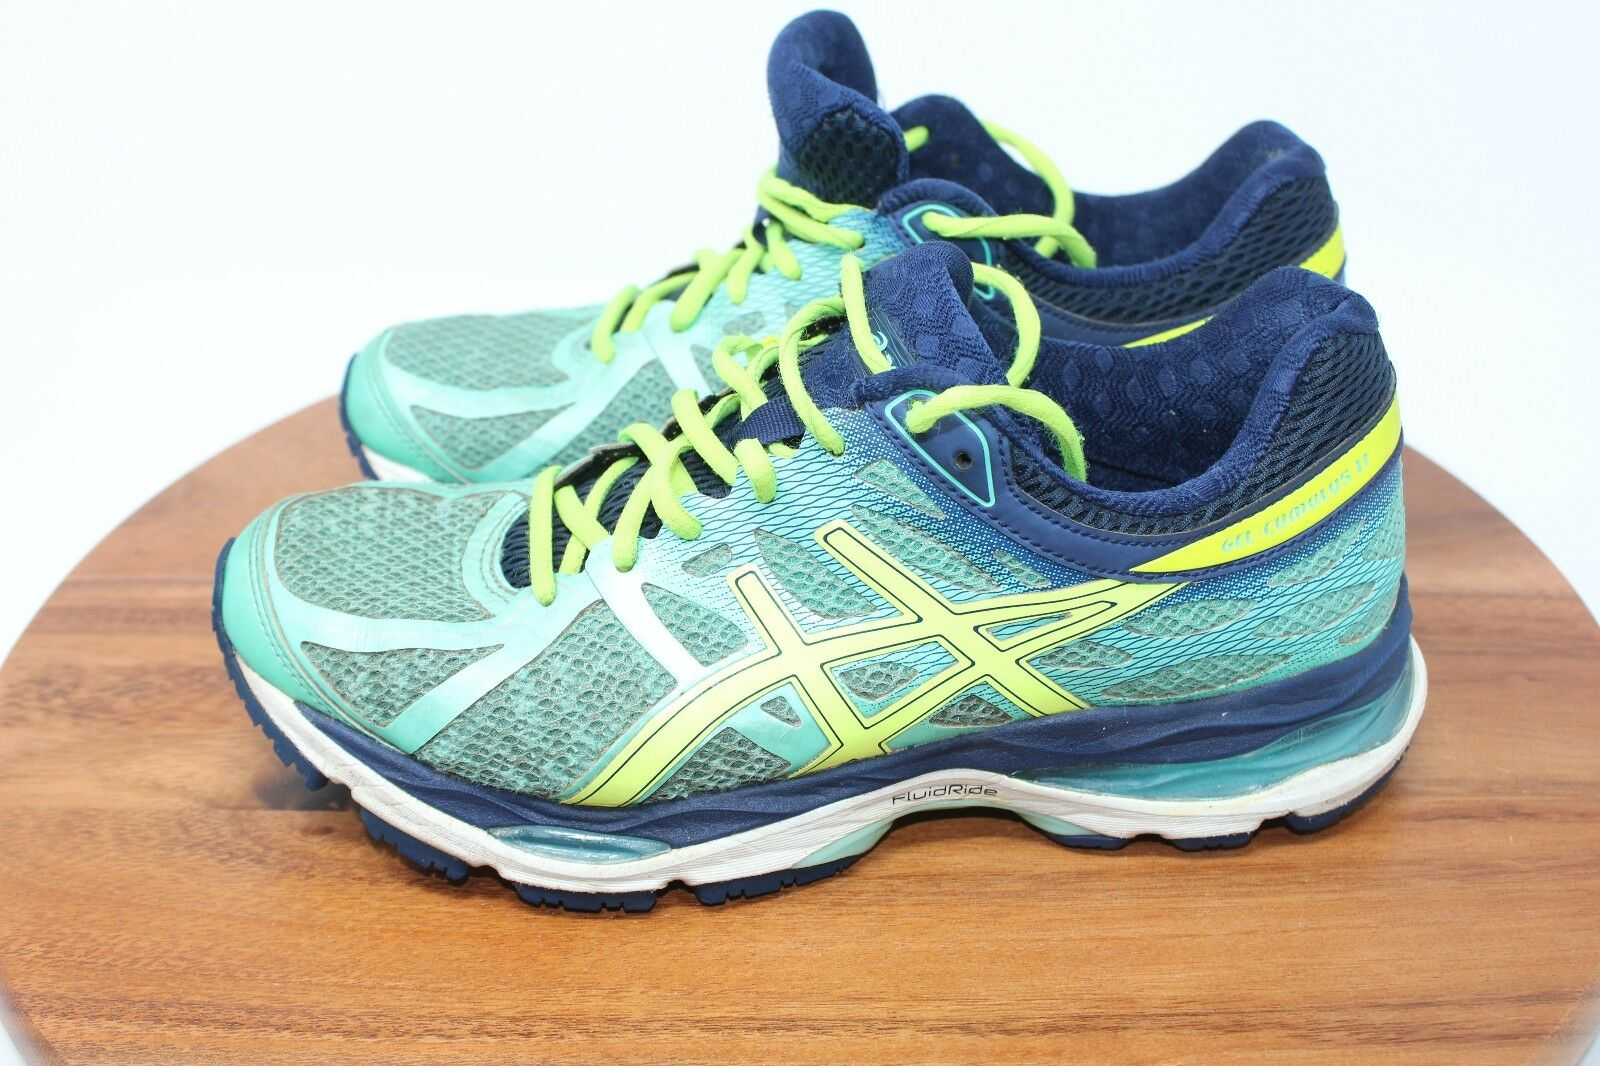 Asics Gel-Cumulus 17 Women's Running Shoes T5D8N Green Yellow Comfortable Seasonal clearance sale